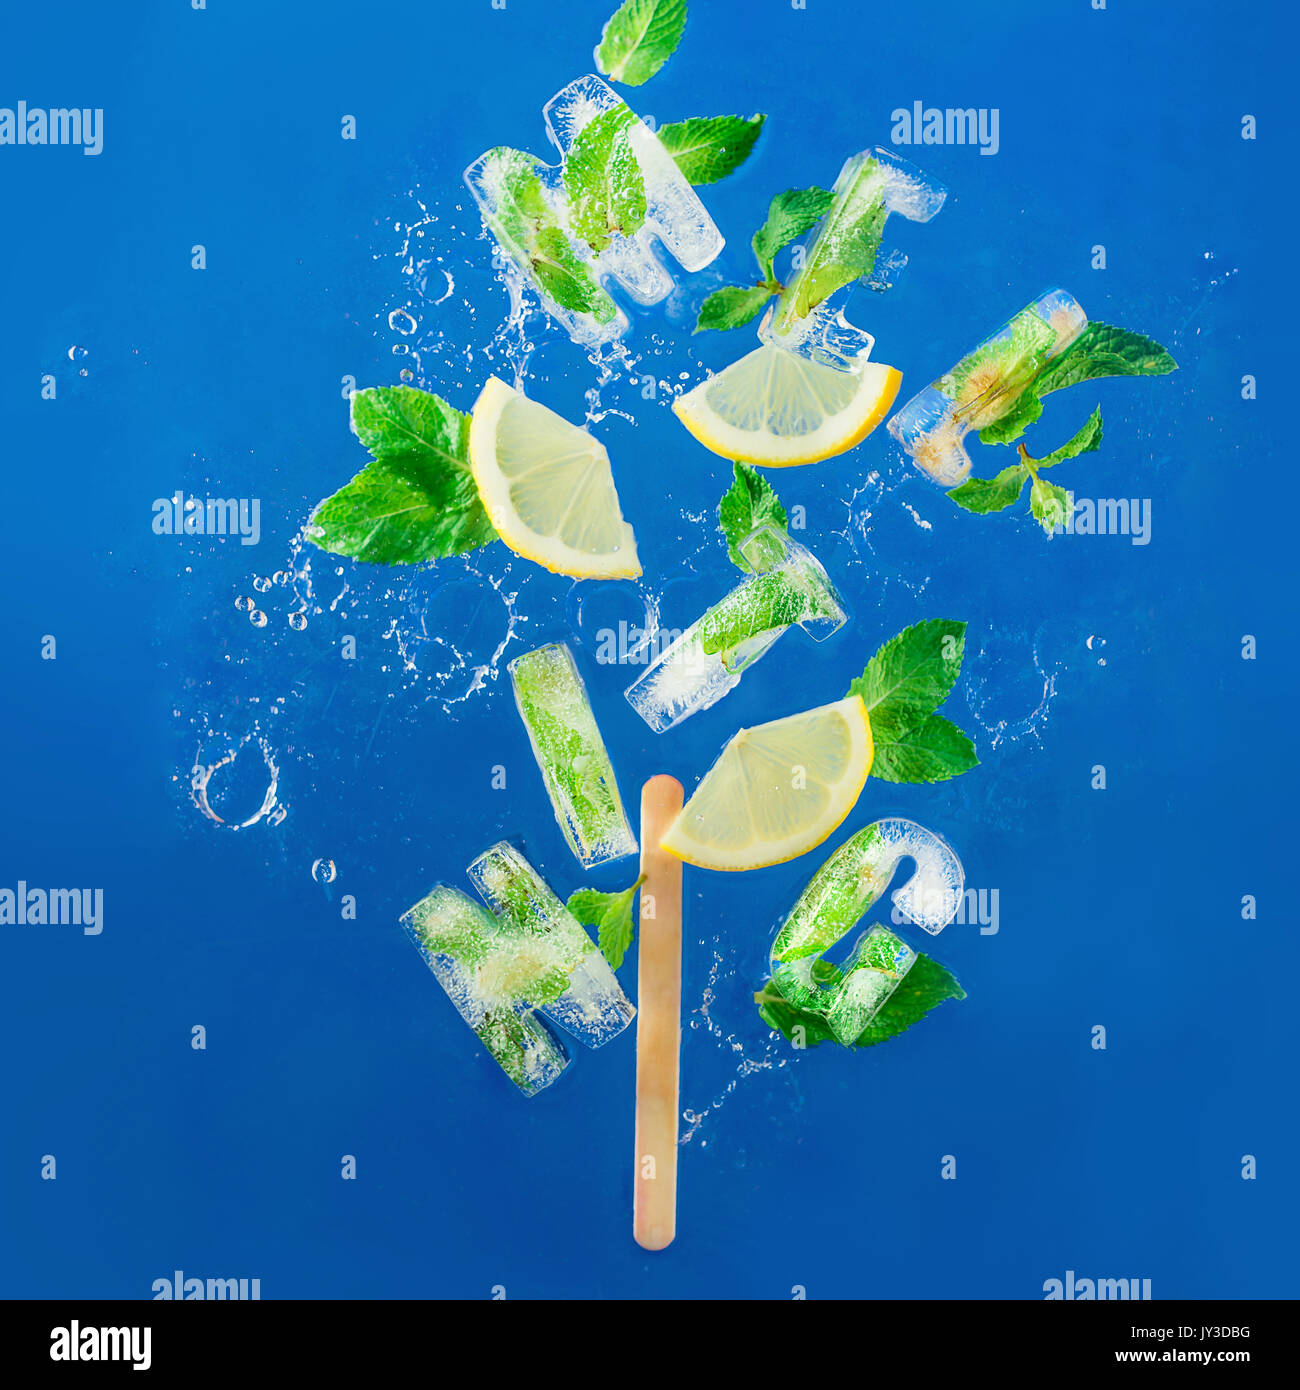 Ice cube lettering with frozen mint leaves, lemon slices and oranges on a blue background with water splashes. Text says Aloha - Stock Image